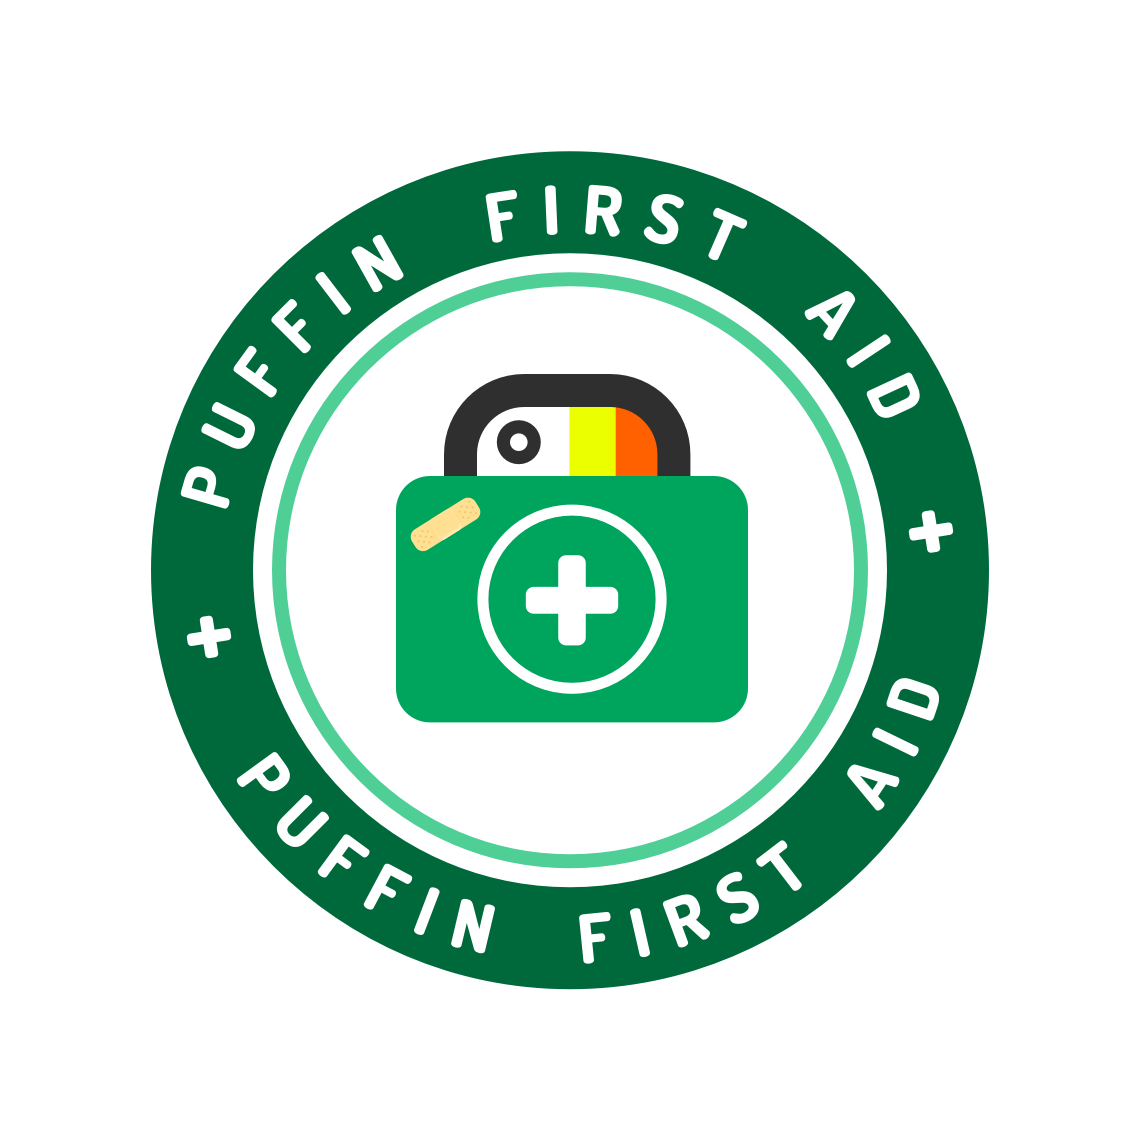 Puffin First Aid